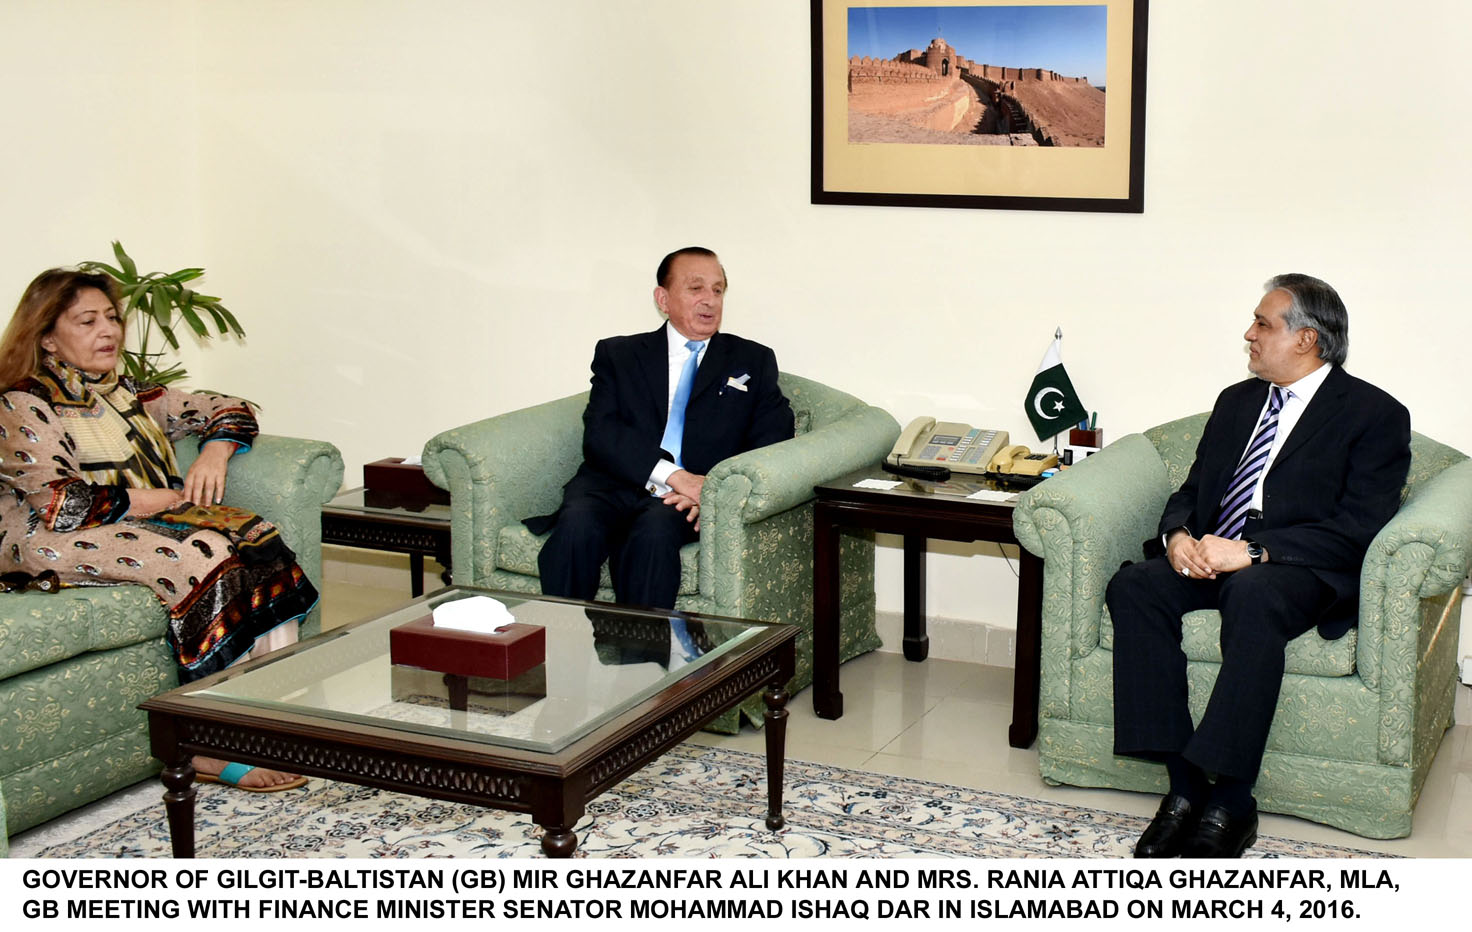 Governor Mir Ghazanfar calls on Federal Finance Minister to discuss GB's economic issues